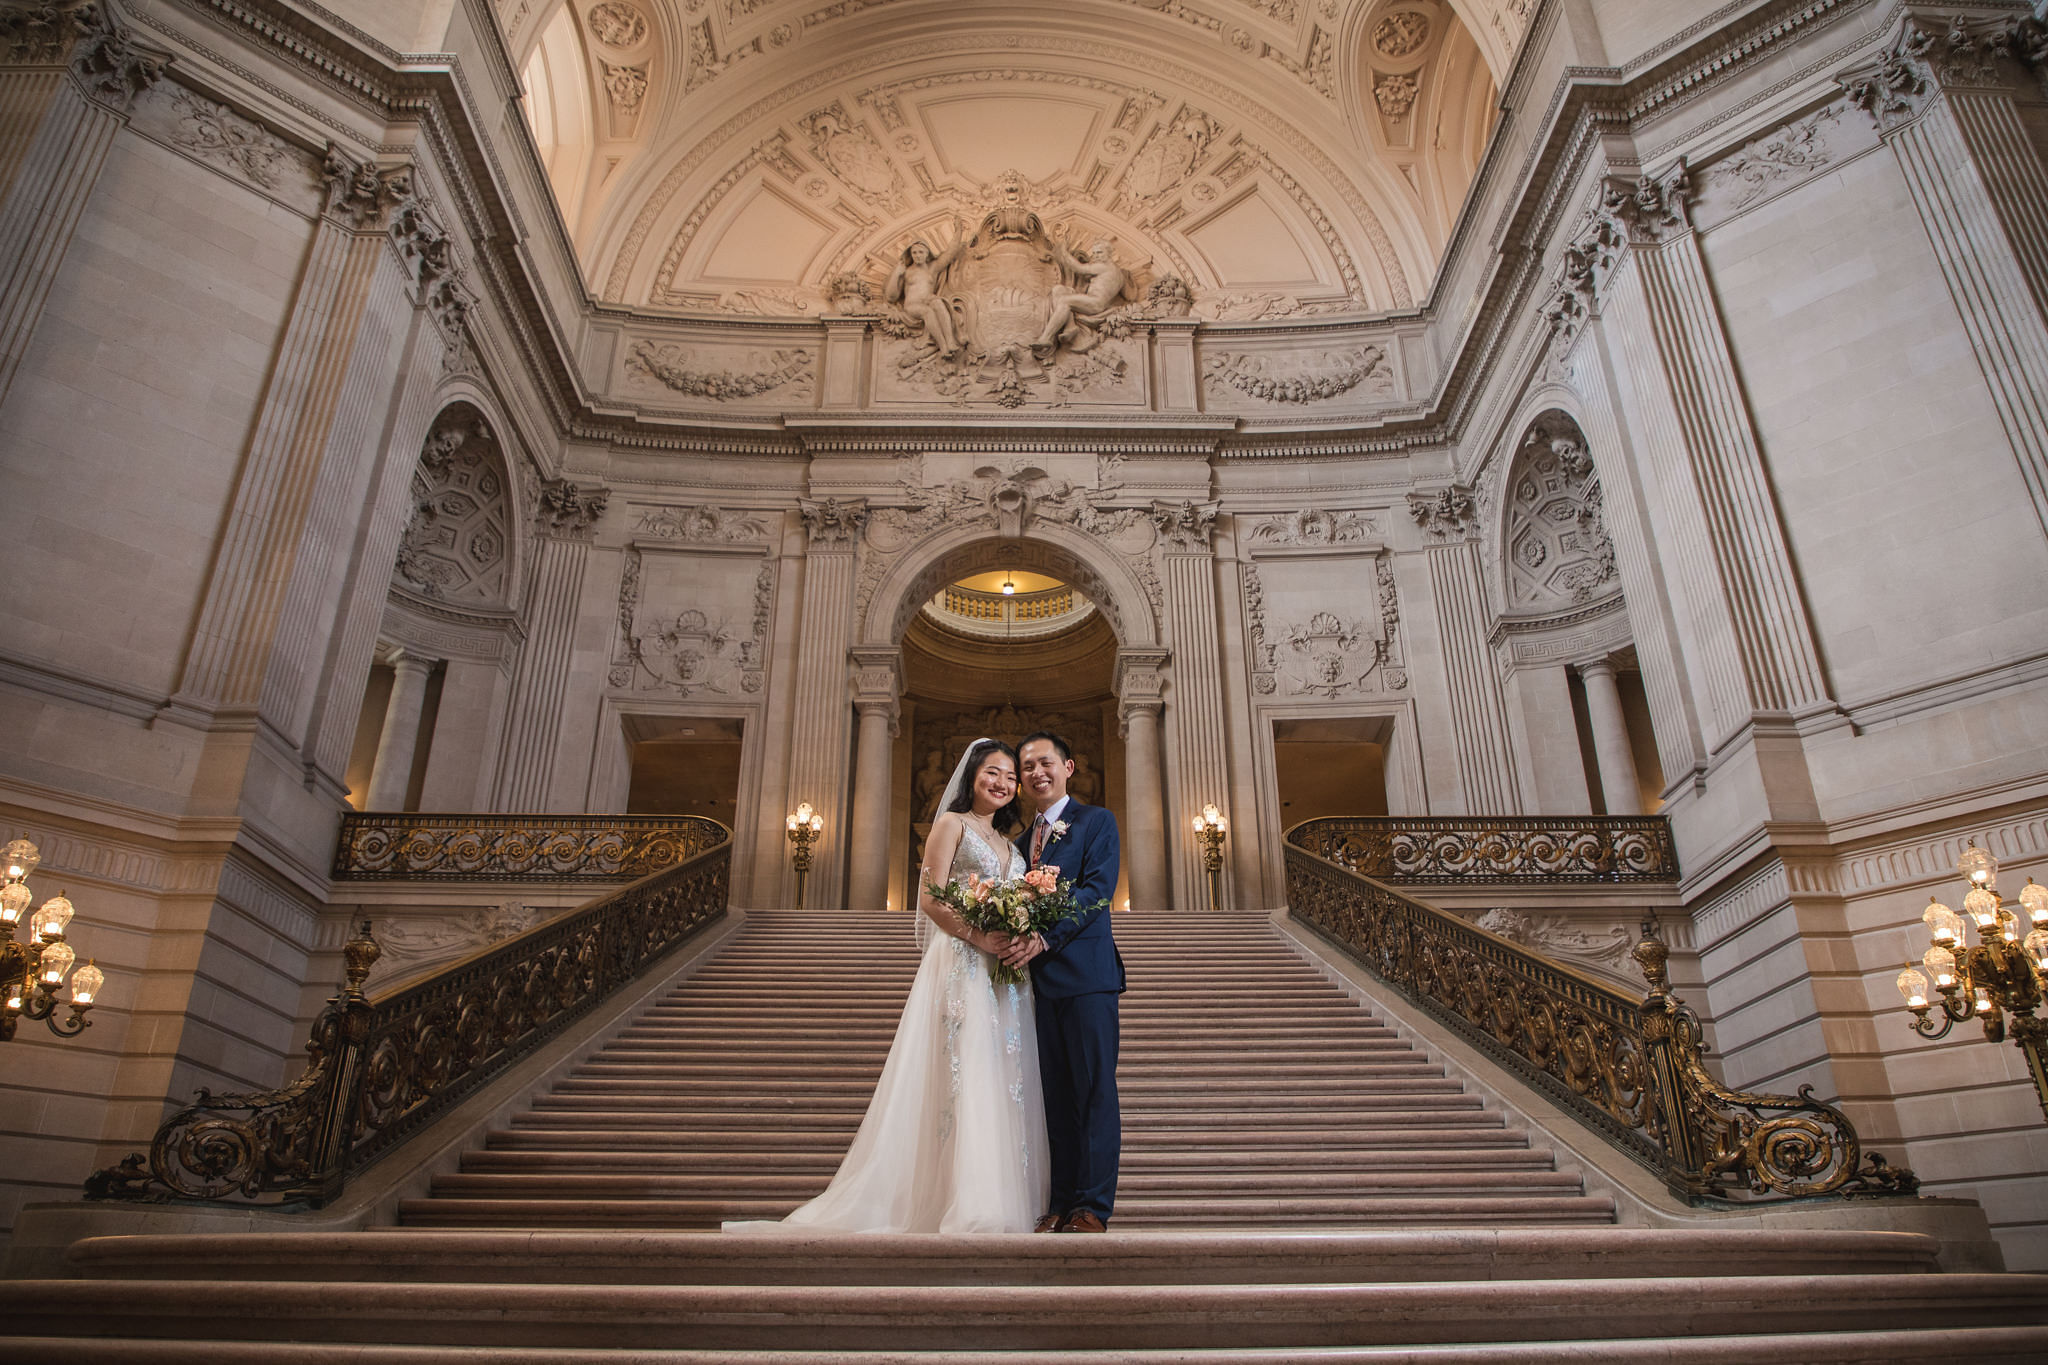 20190326-LouvandMuyWeddingPhotosWebOptimized-169.jpg